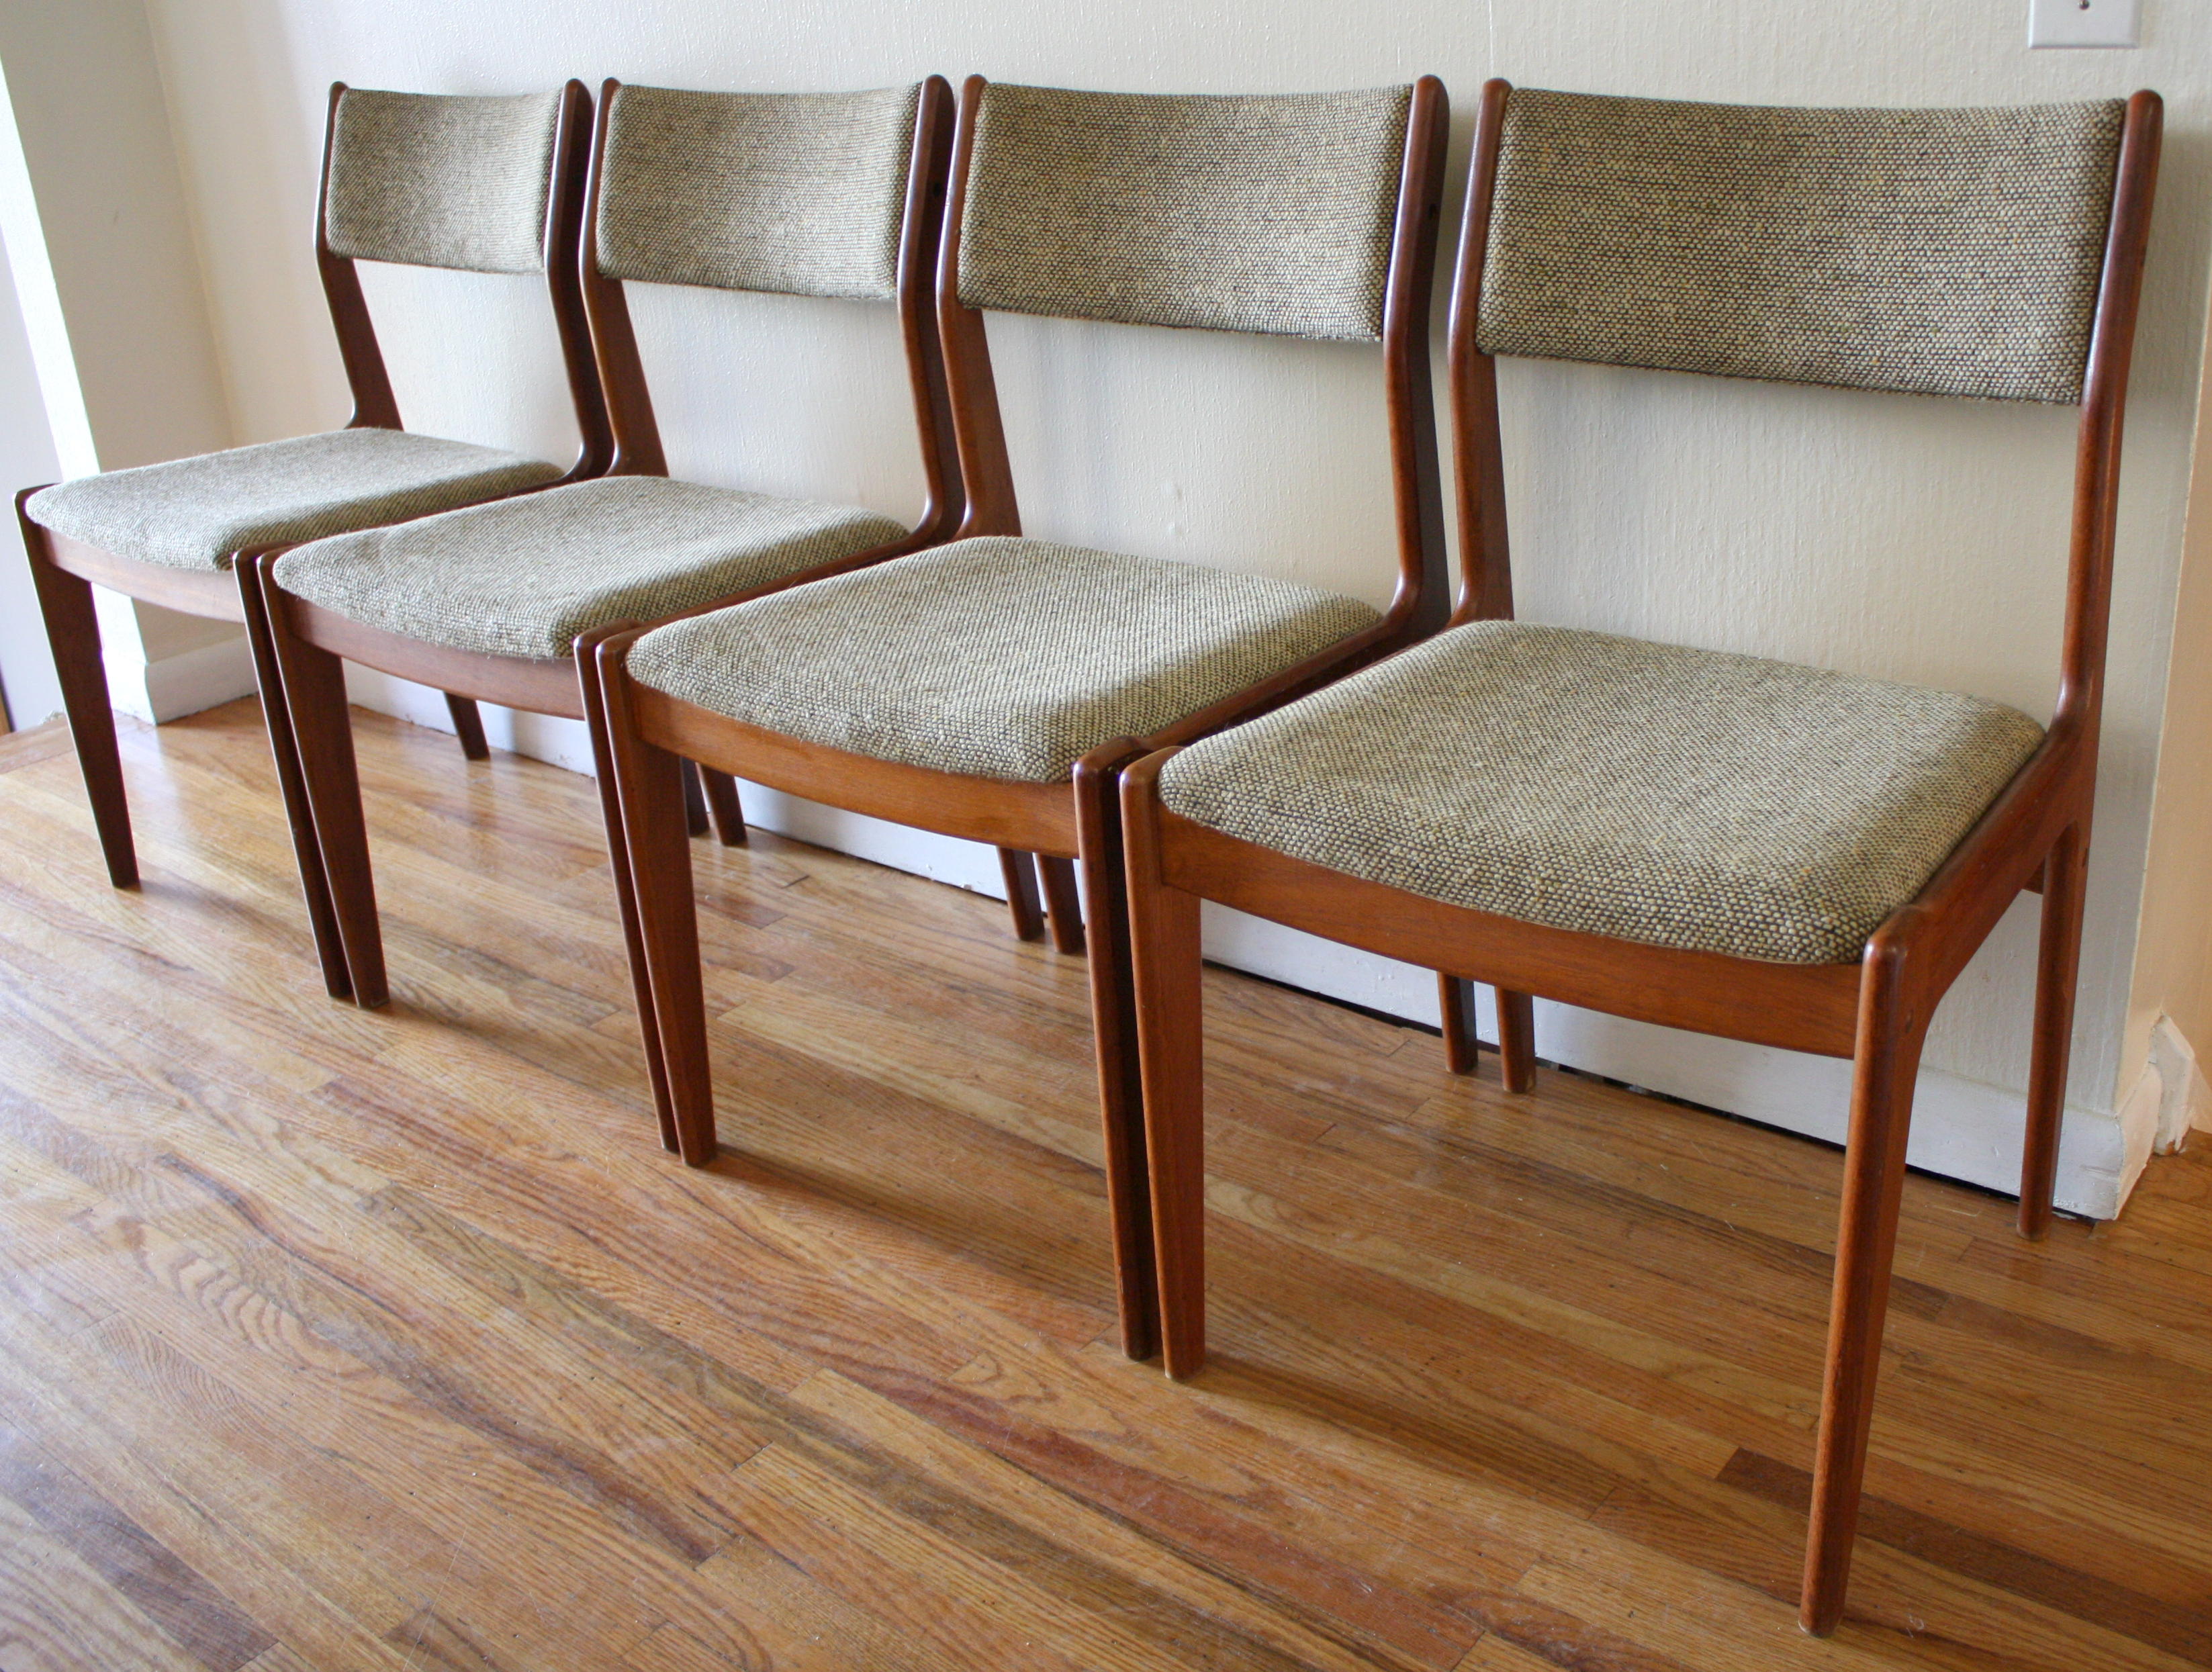 Incredible Mid Century Modern Danish Style Dining Chairs 3294 x 2490 · 4642 kB · jpeg